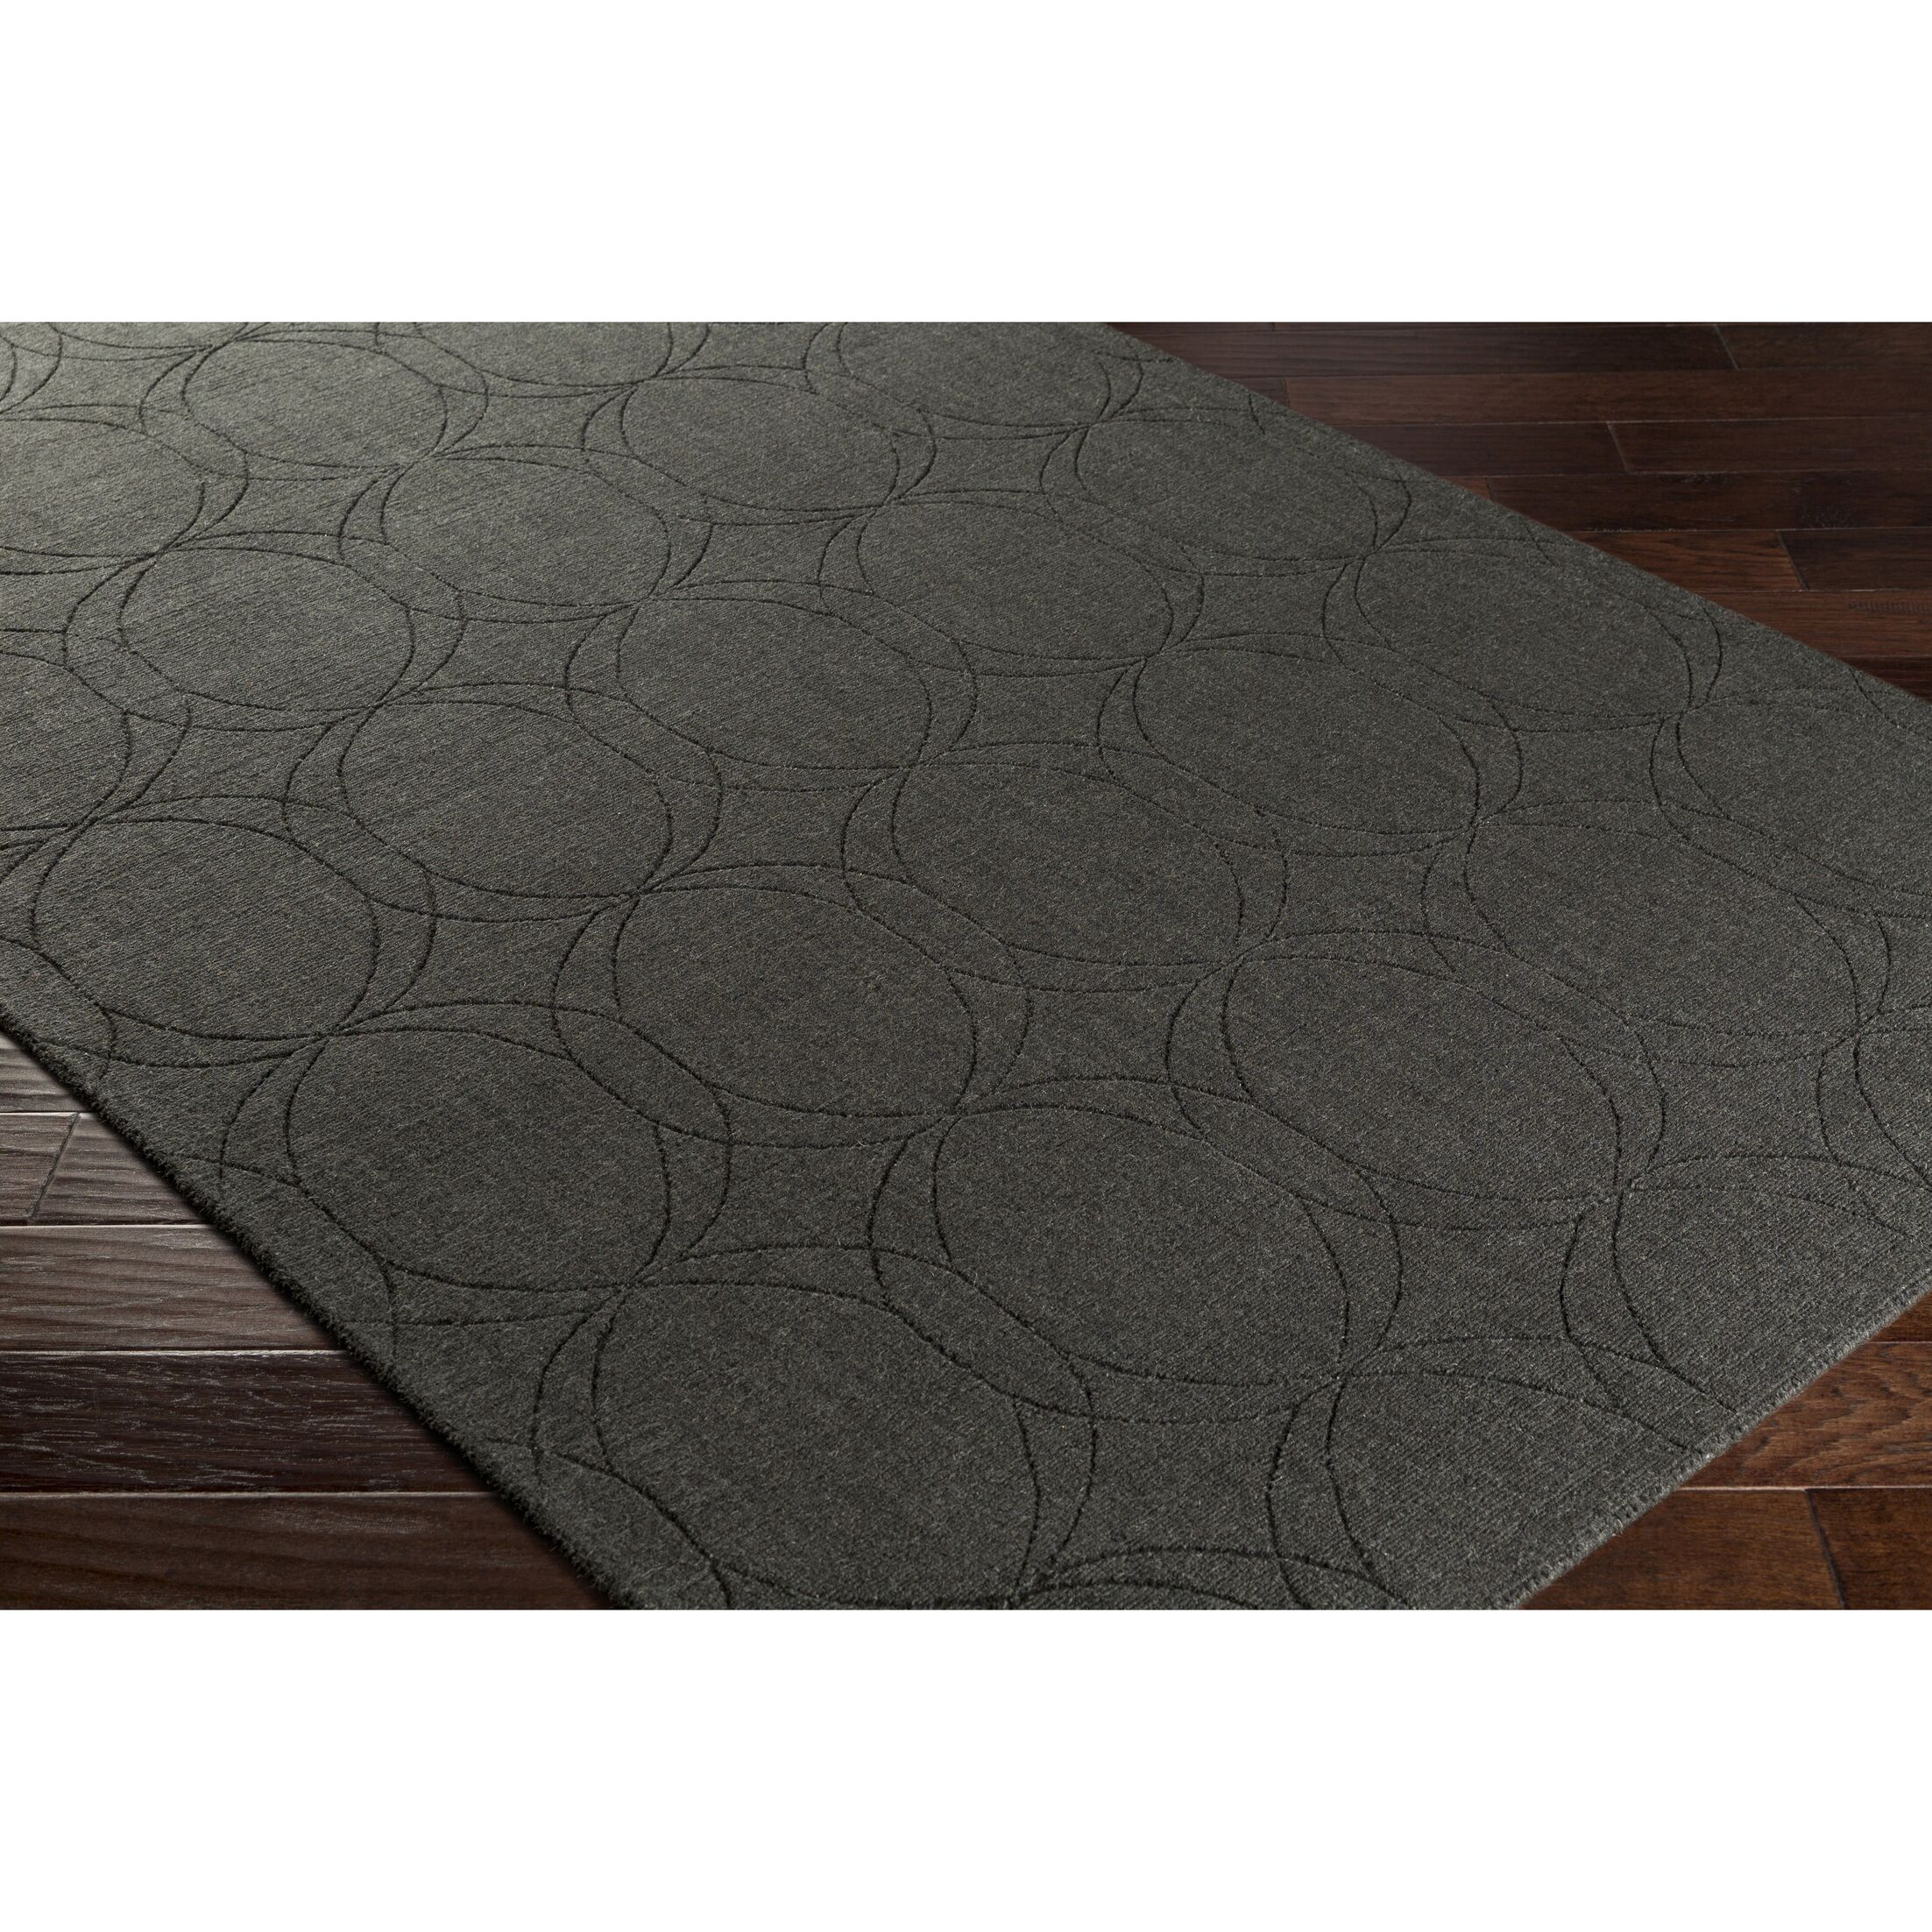 Belle Hand-Loomed Gray Area Rug Rug Size: Rectangle 5' x 7'6